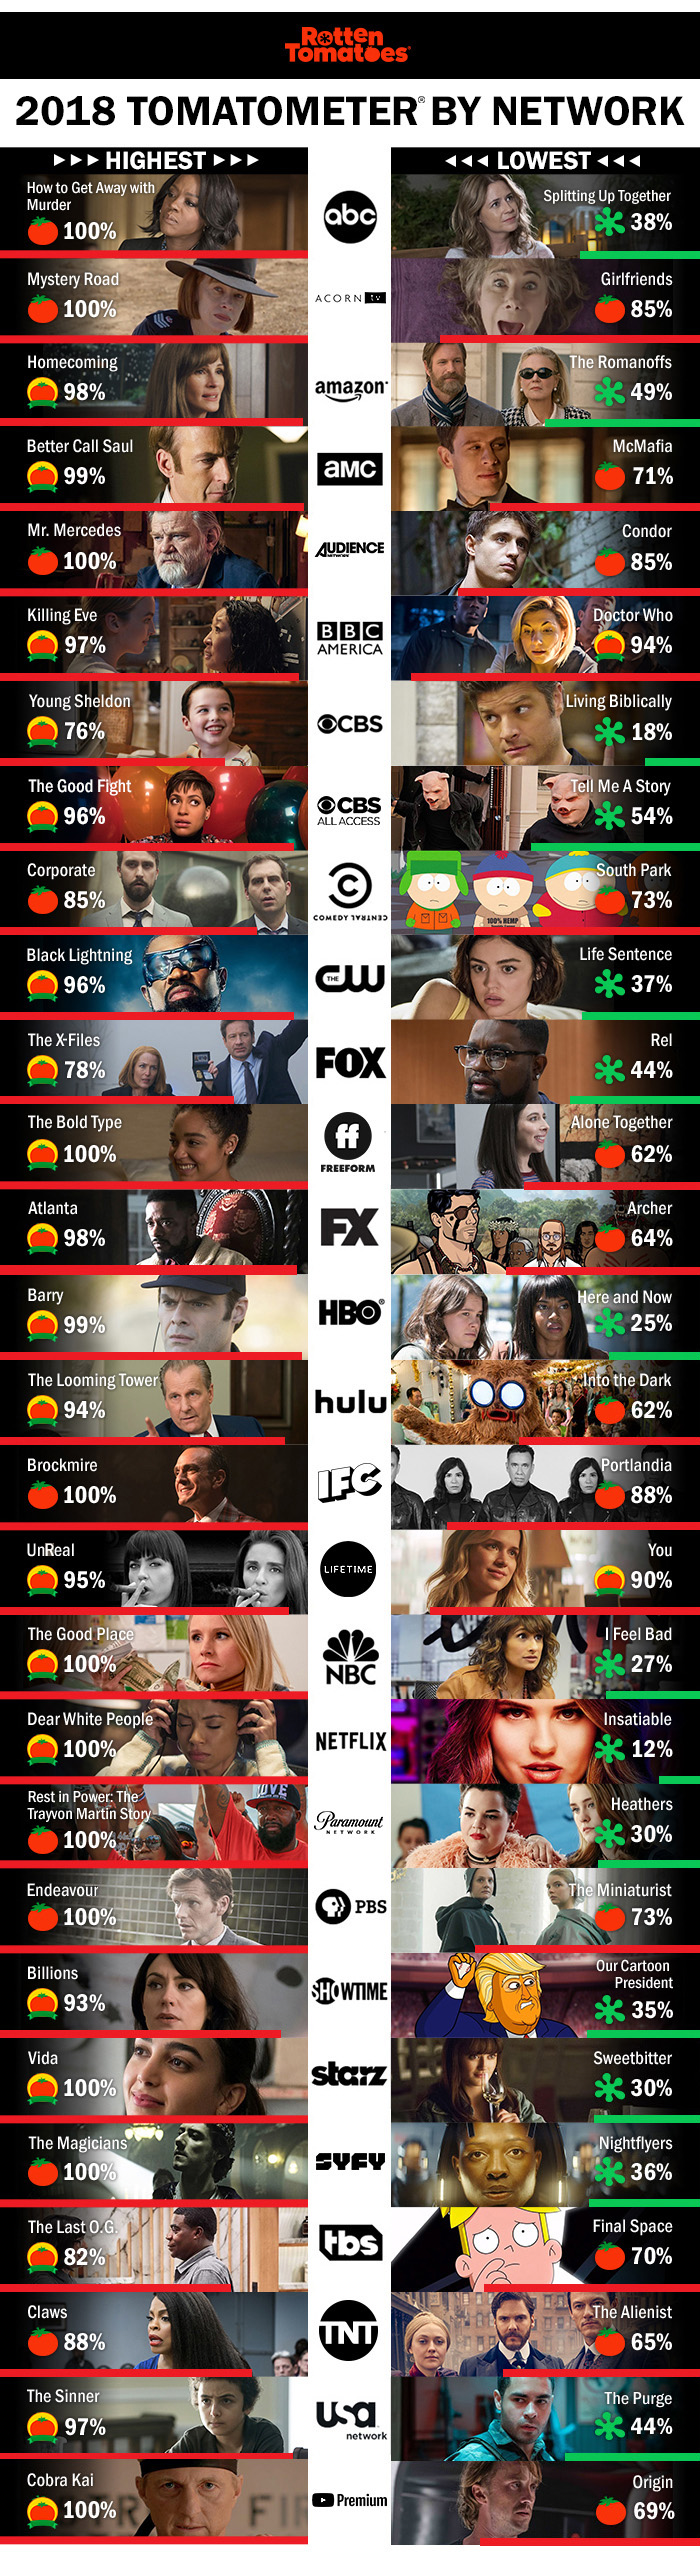 Television Series Of The Best And Worst Reviewed Television Series Of 2018 By Network